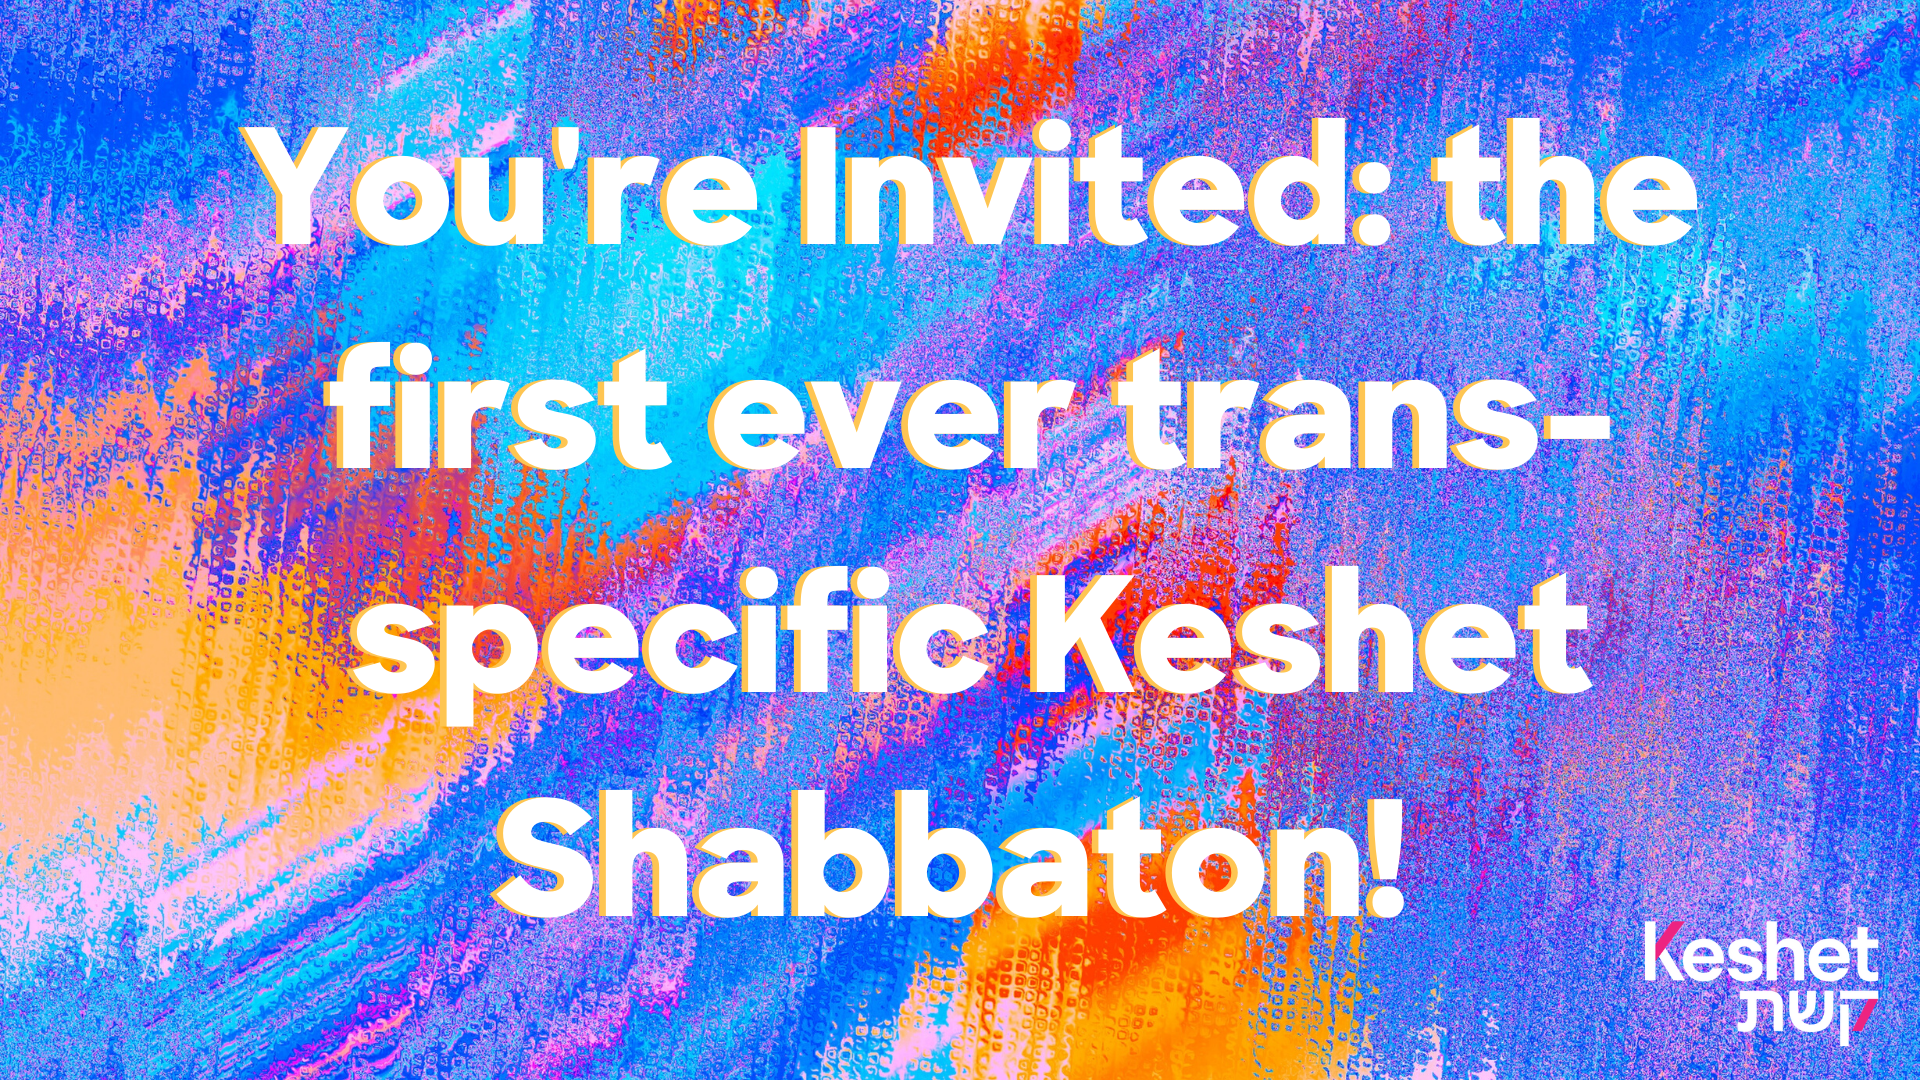 You're Invited: the first ever trans-specific Keshet Shabbaton!